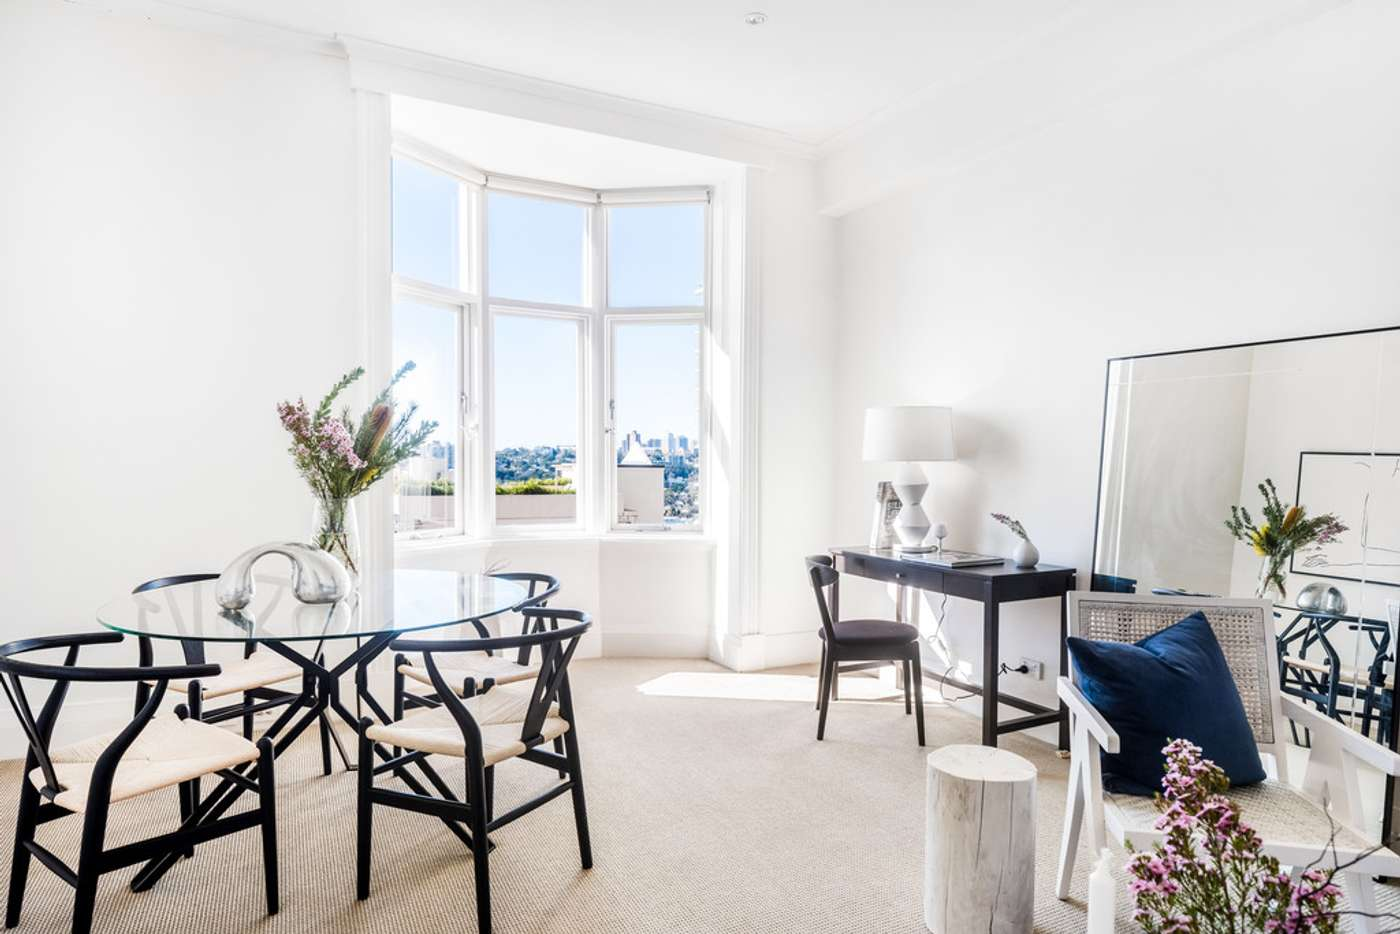 Main view of Homely apartment listing, 43/16 Kings Cross Road, Potts Point NSW 2011